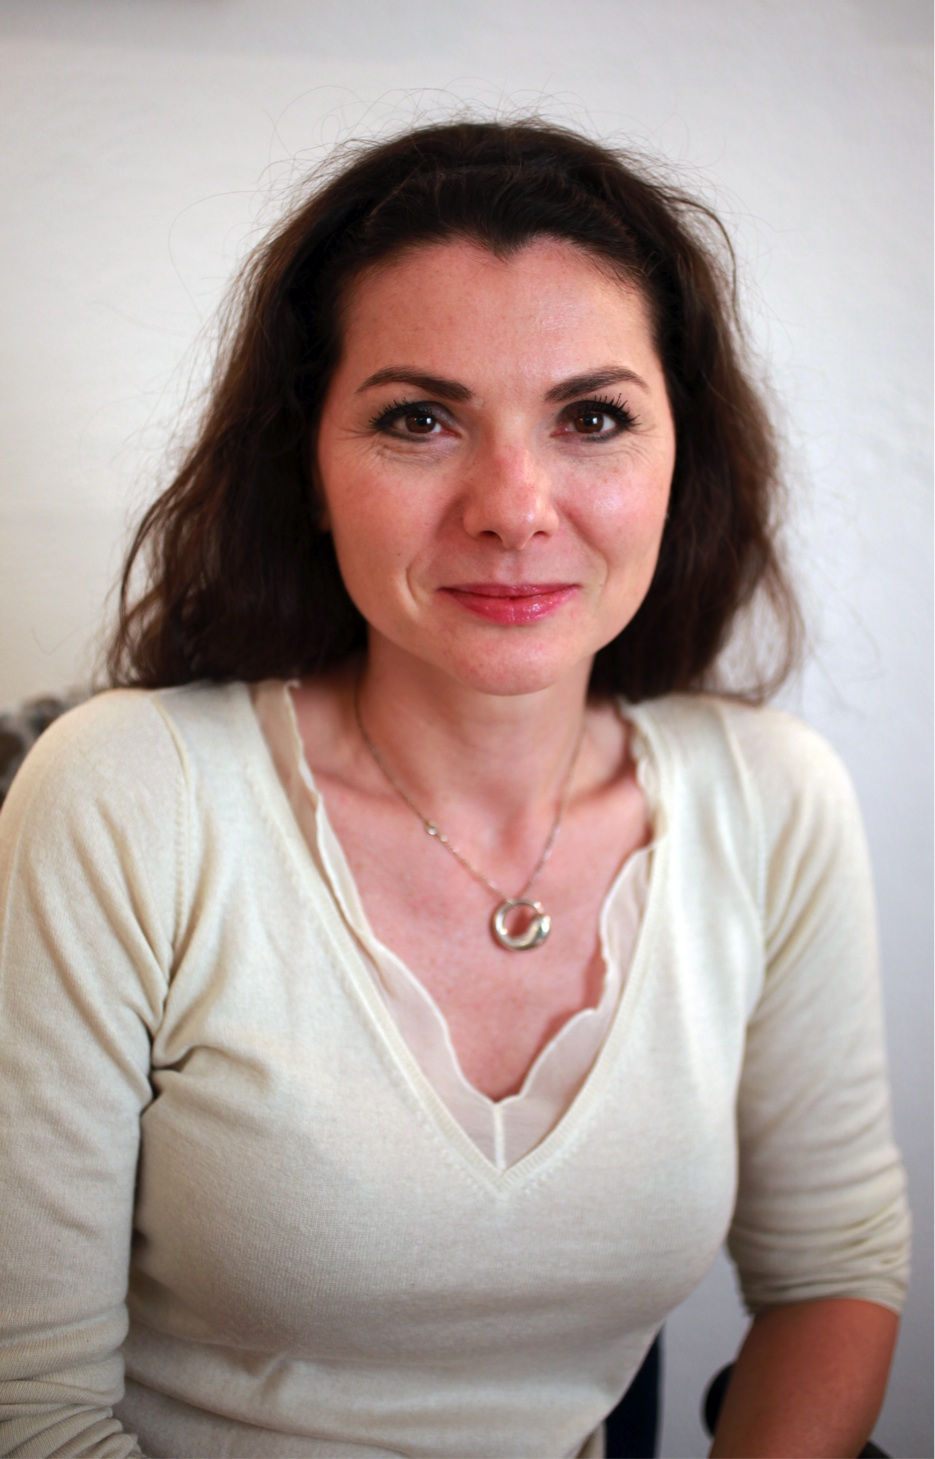 Virginie Berger, the myndset digital marketing et strategie de marque